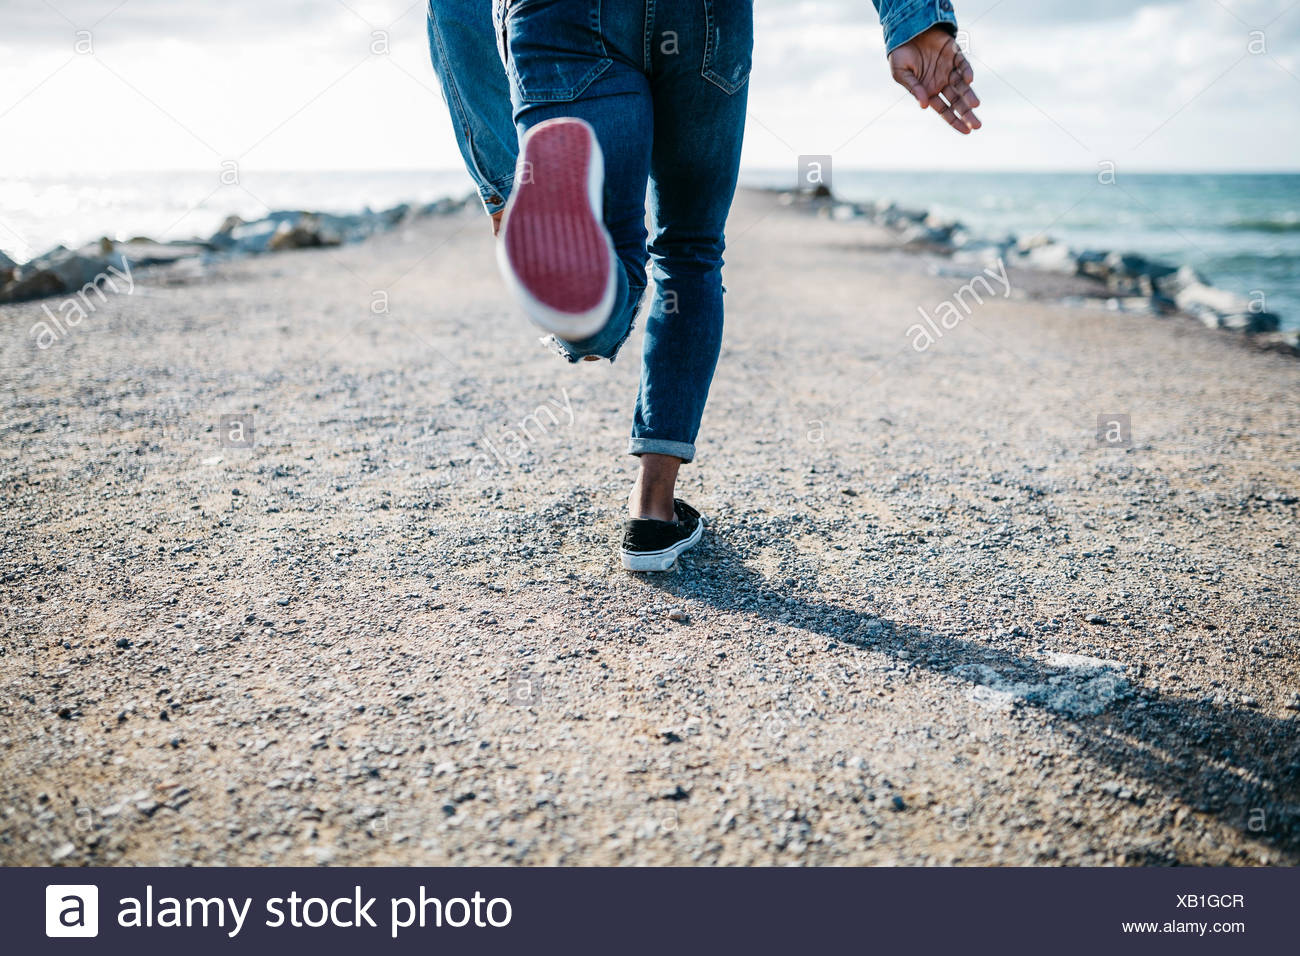 Legs of young man running on jetty - Stock Image